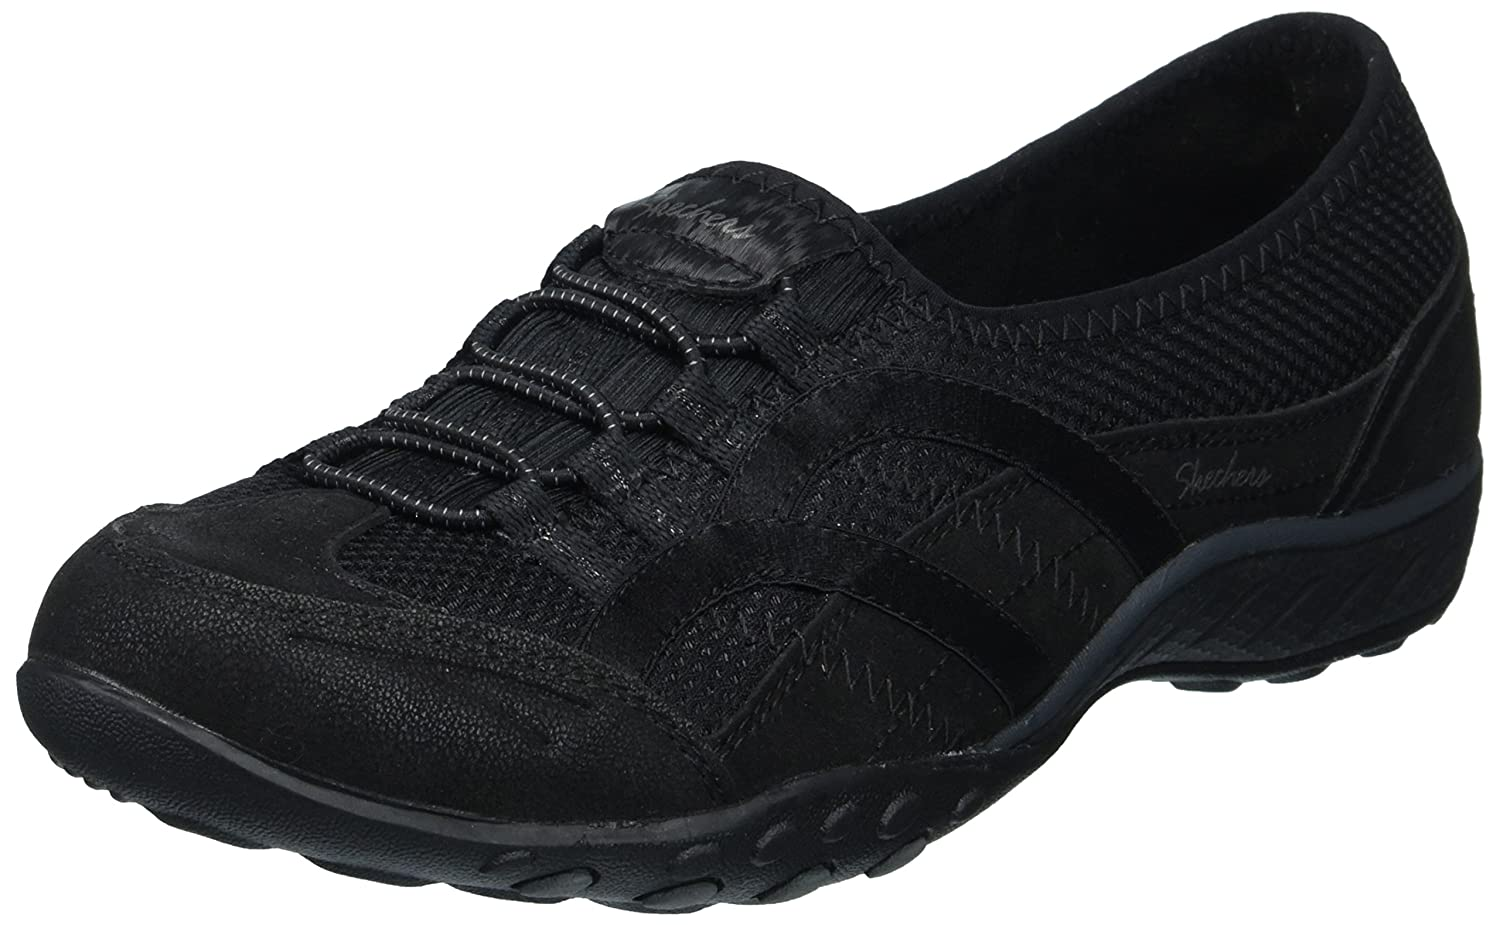 Skechers Women's Breathe Easy Well Versed Sneaker B074875TLM 8.5 B(M) US|Black